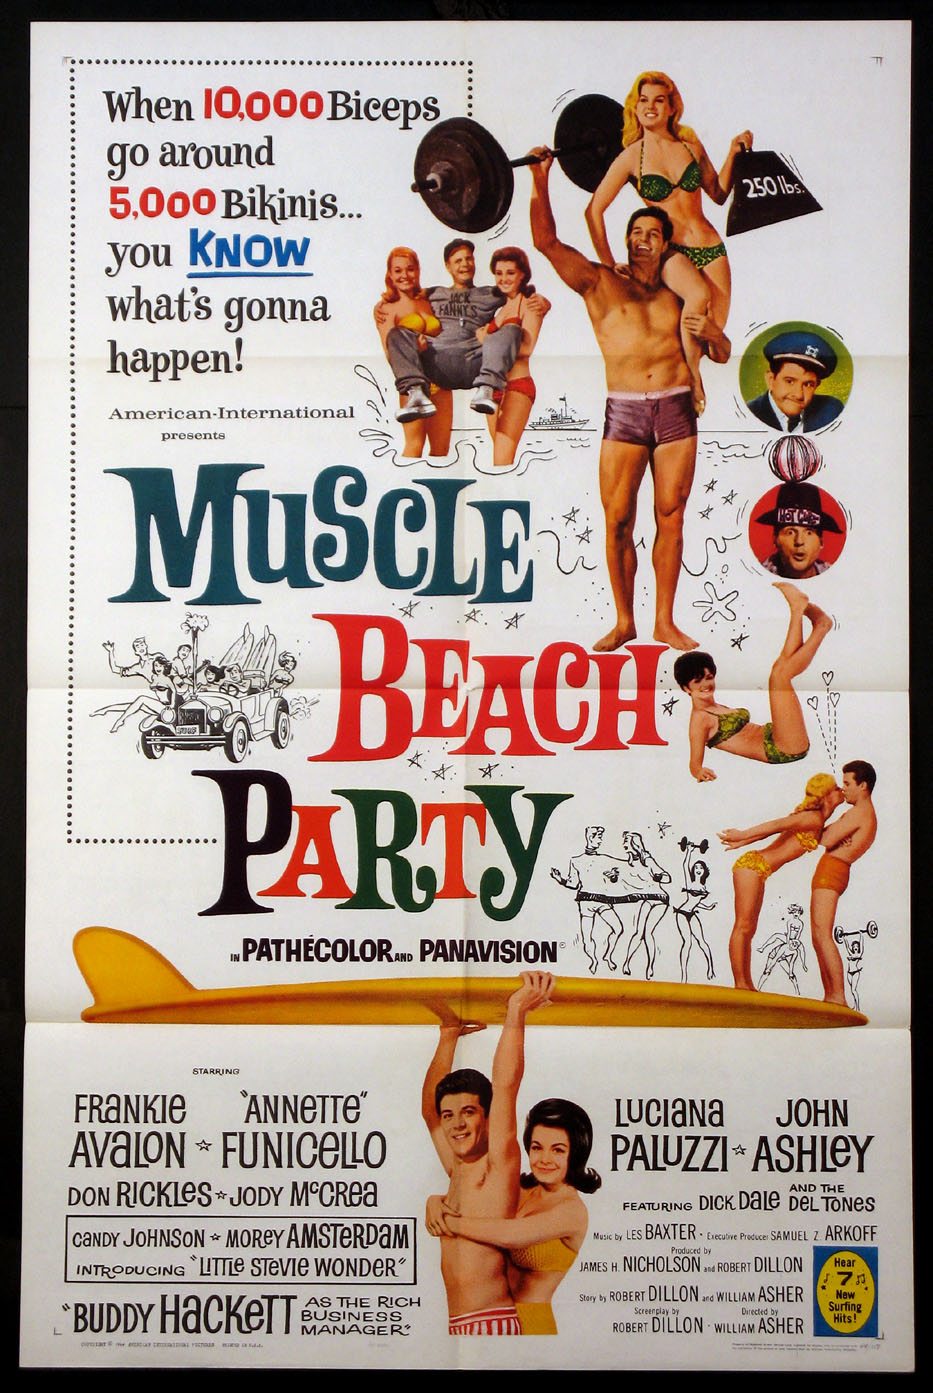 MUSCLE BEACH PARTY @ FilmPosters.com